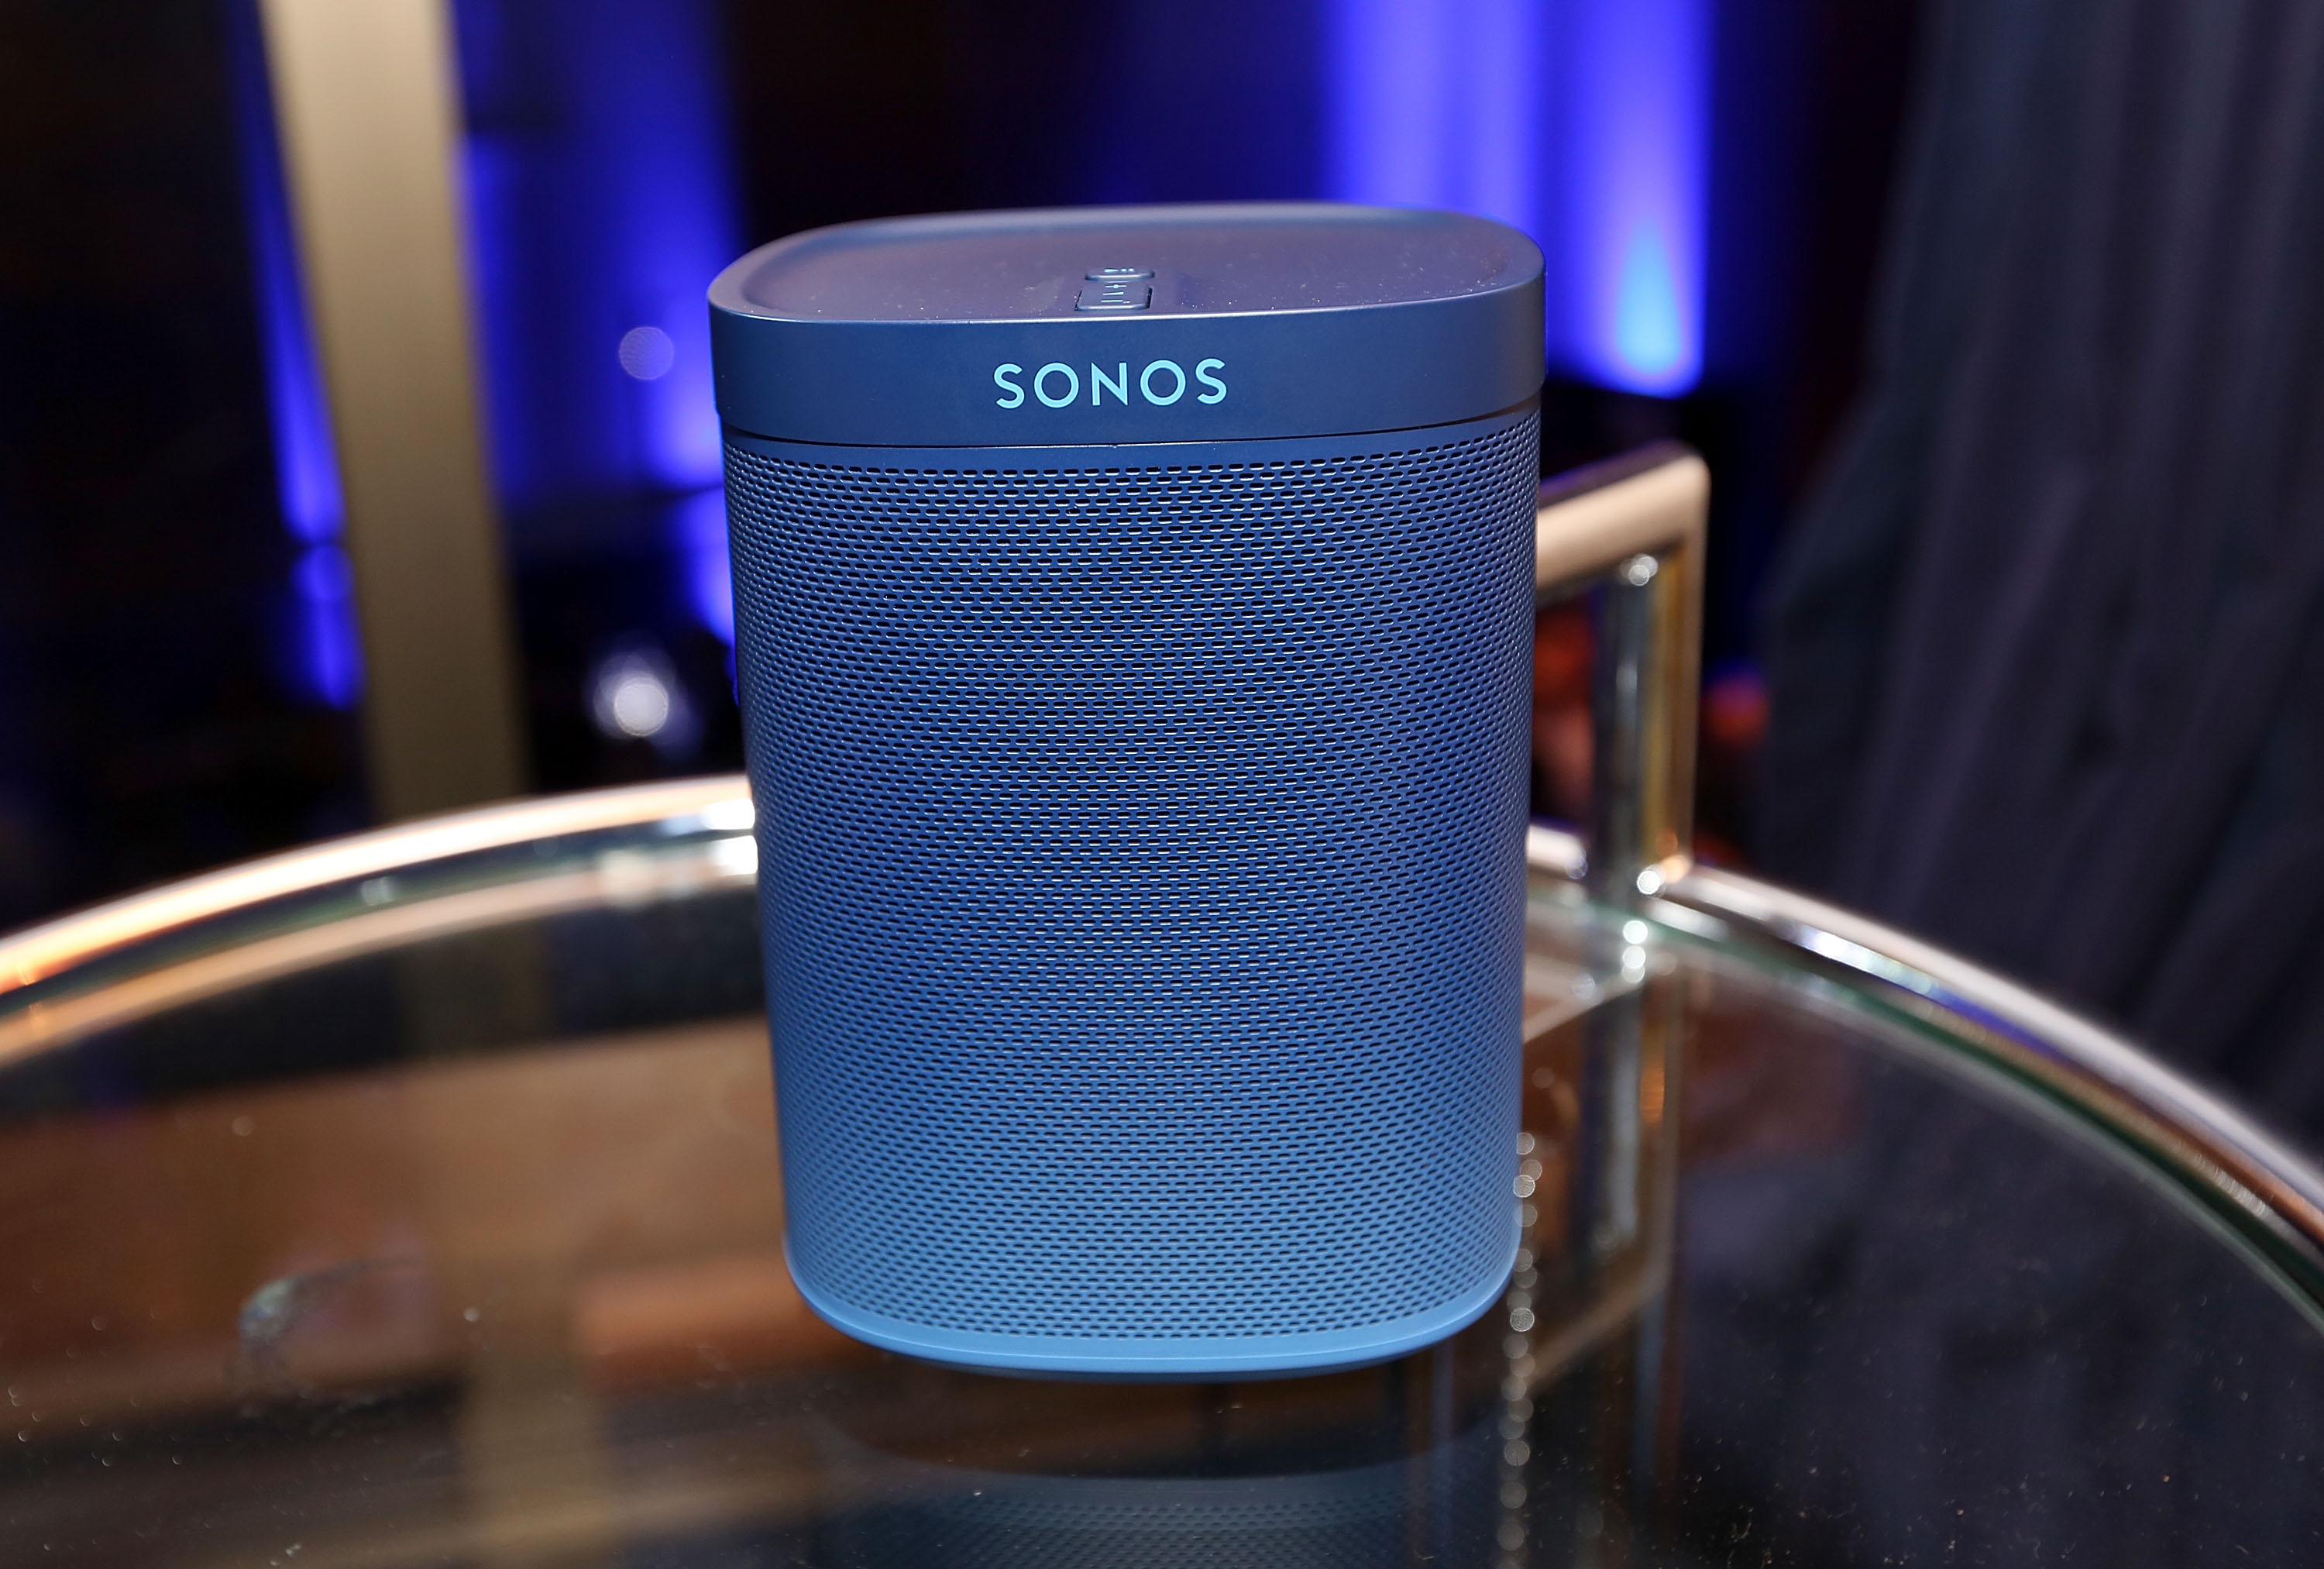 Sonos And Blue Note Records Celebrate 75 Years Of Jazz Music And The Launch Of The Blue Note Limited Edition Sonos Speaker At The Iconic Capitol Records Tower In Hollywood